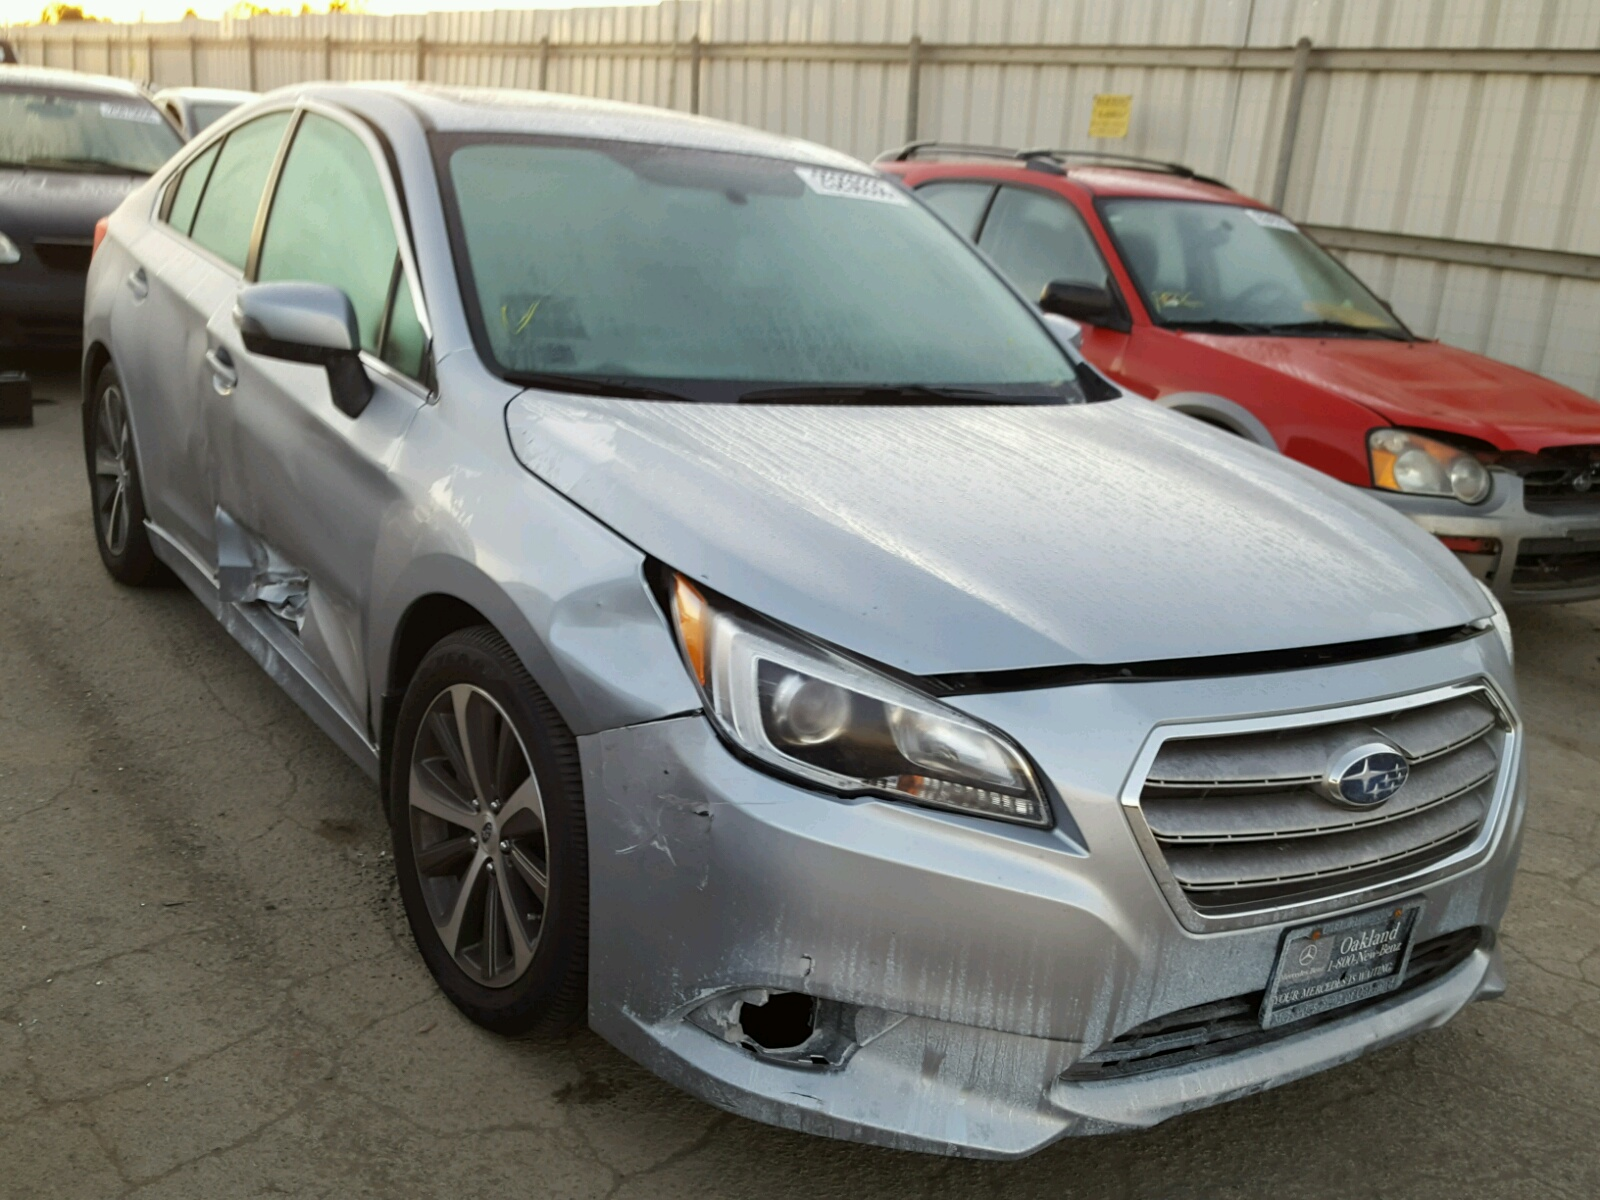 Auto Auction Ended on VIN 4S3BNEN61G 2016 SUBARU LEGACY 3 6